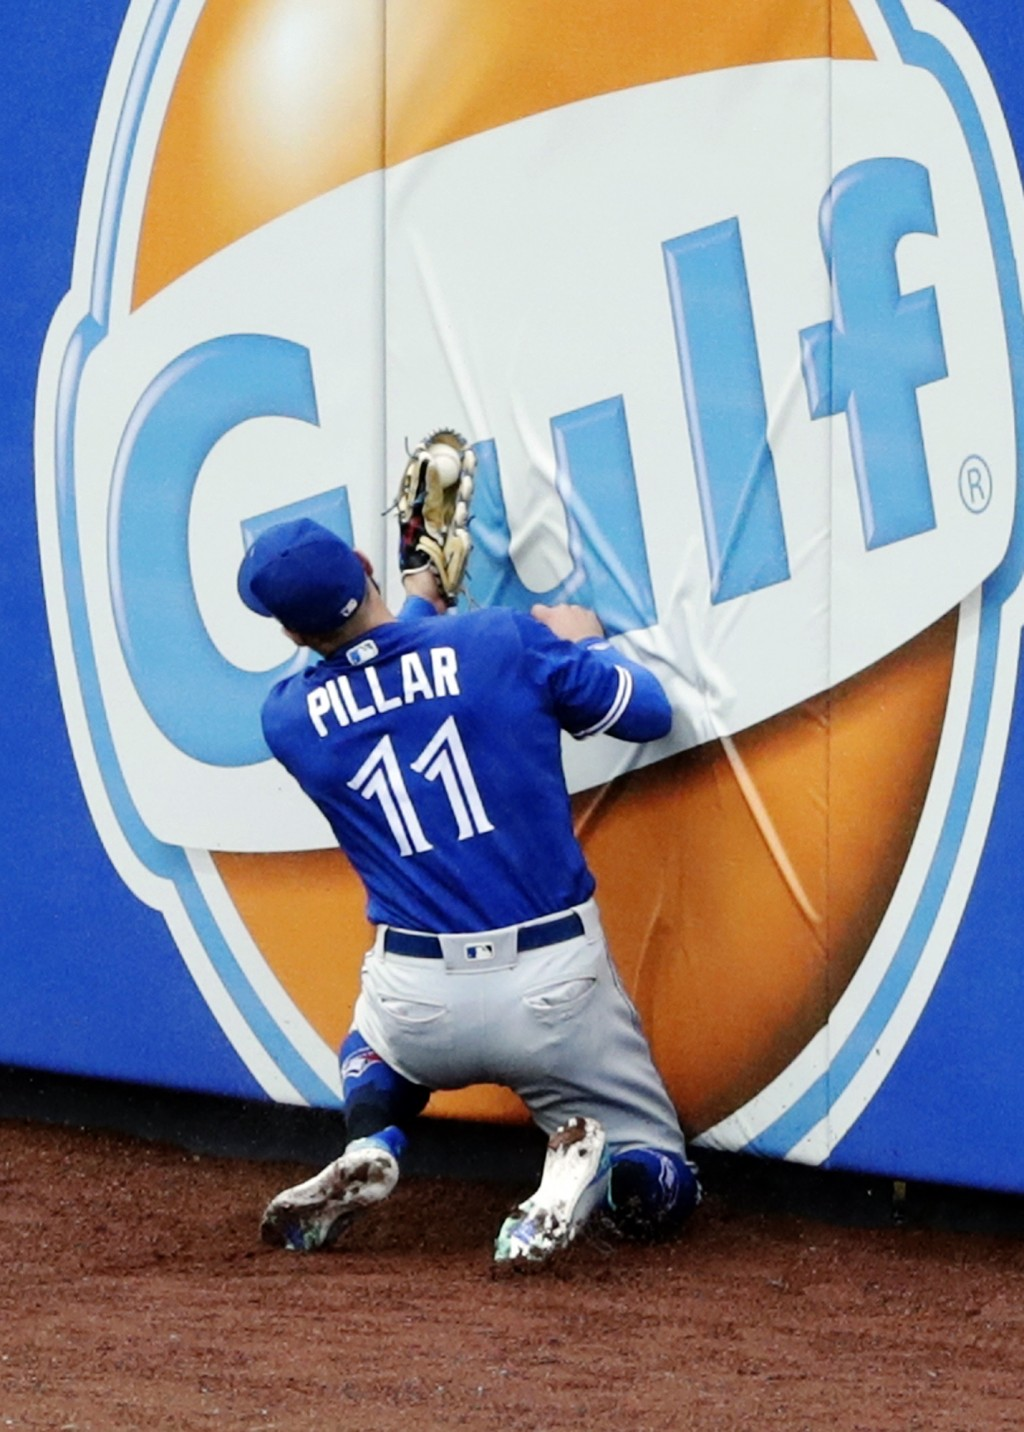 Toronto Blue Jays center fielder Kevin Pillar catches a ball hit by New York Mets' Michael Conforto for an out as he hits the wall during the second i